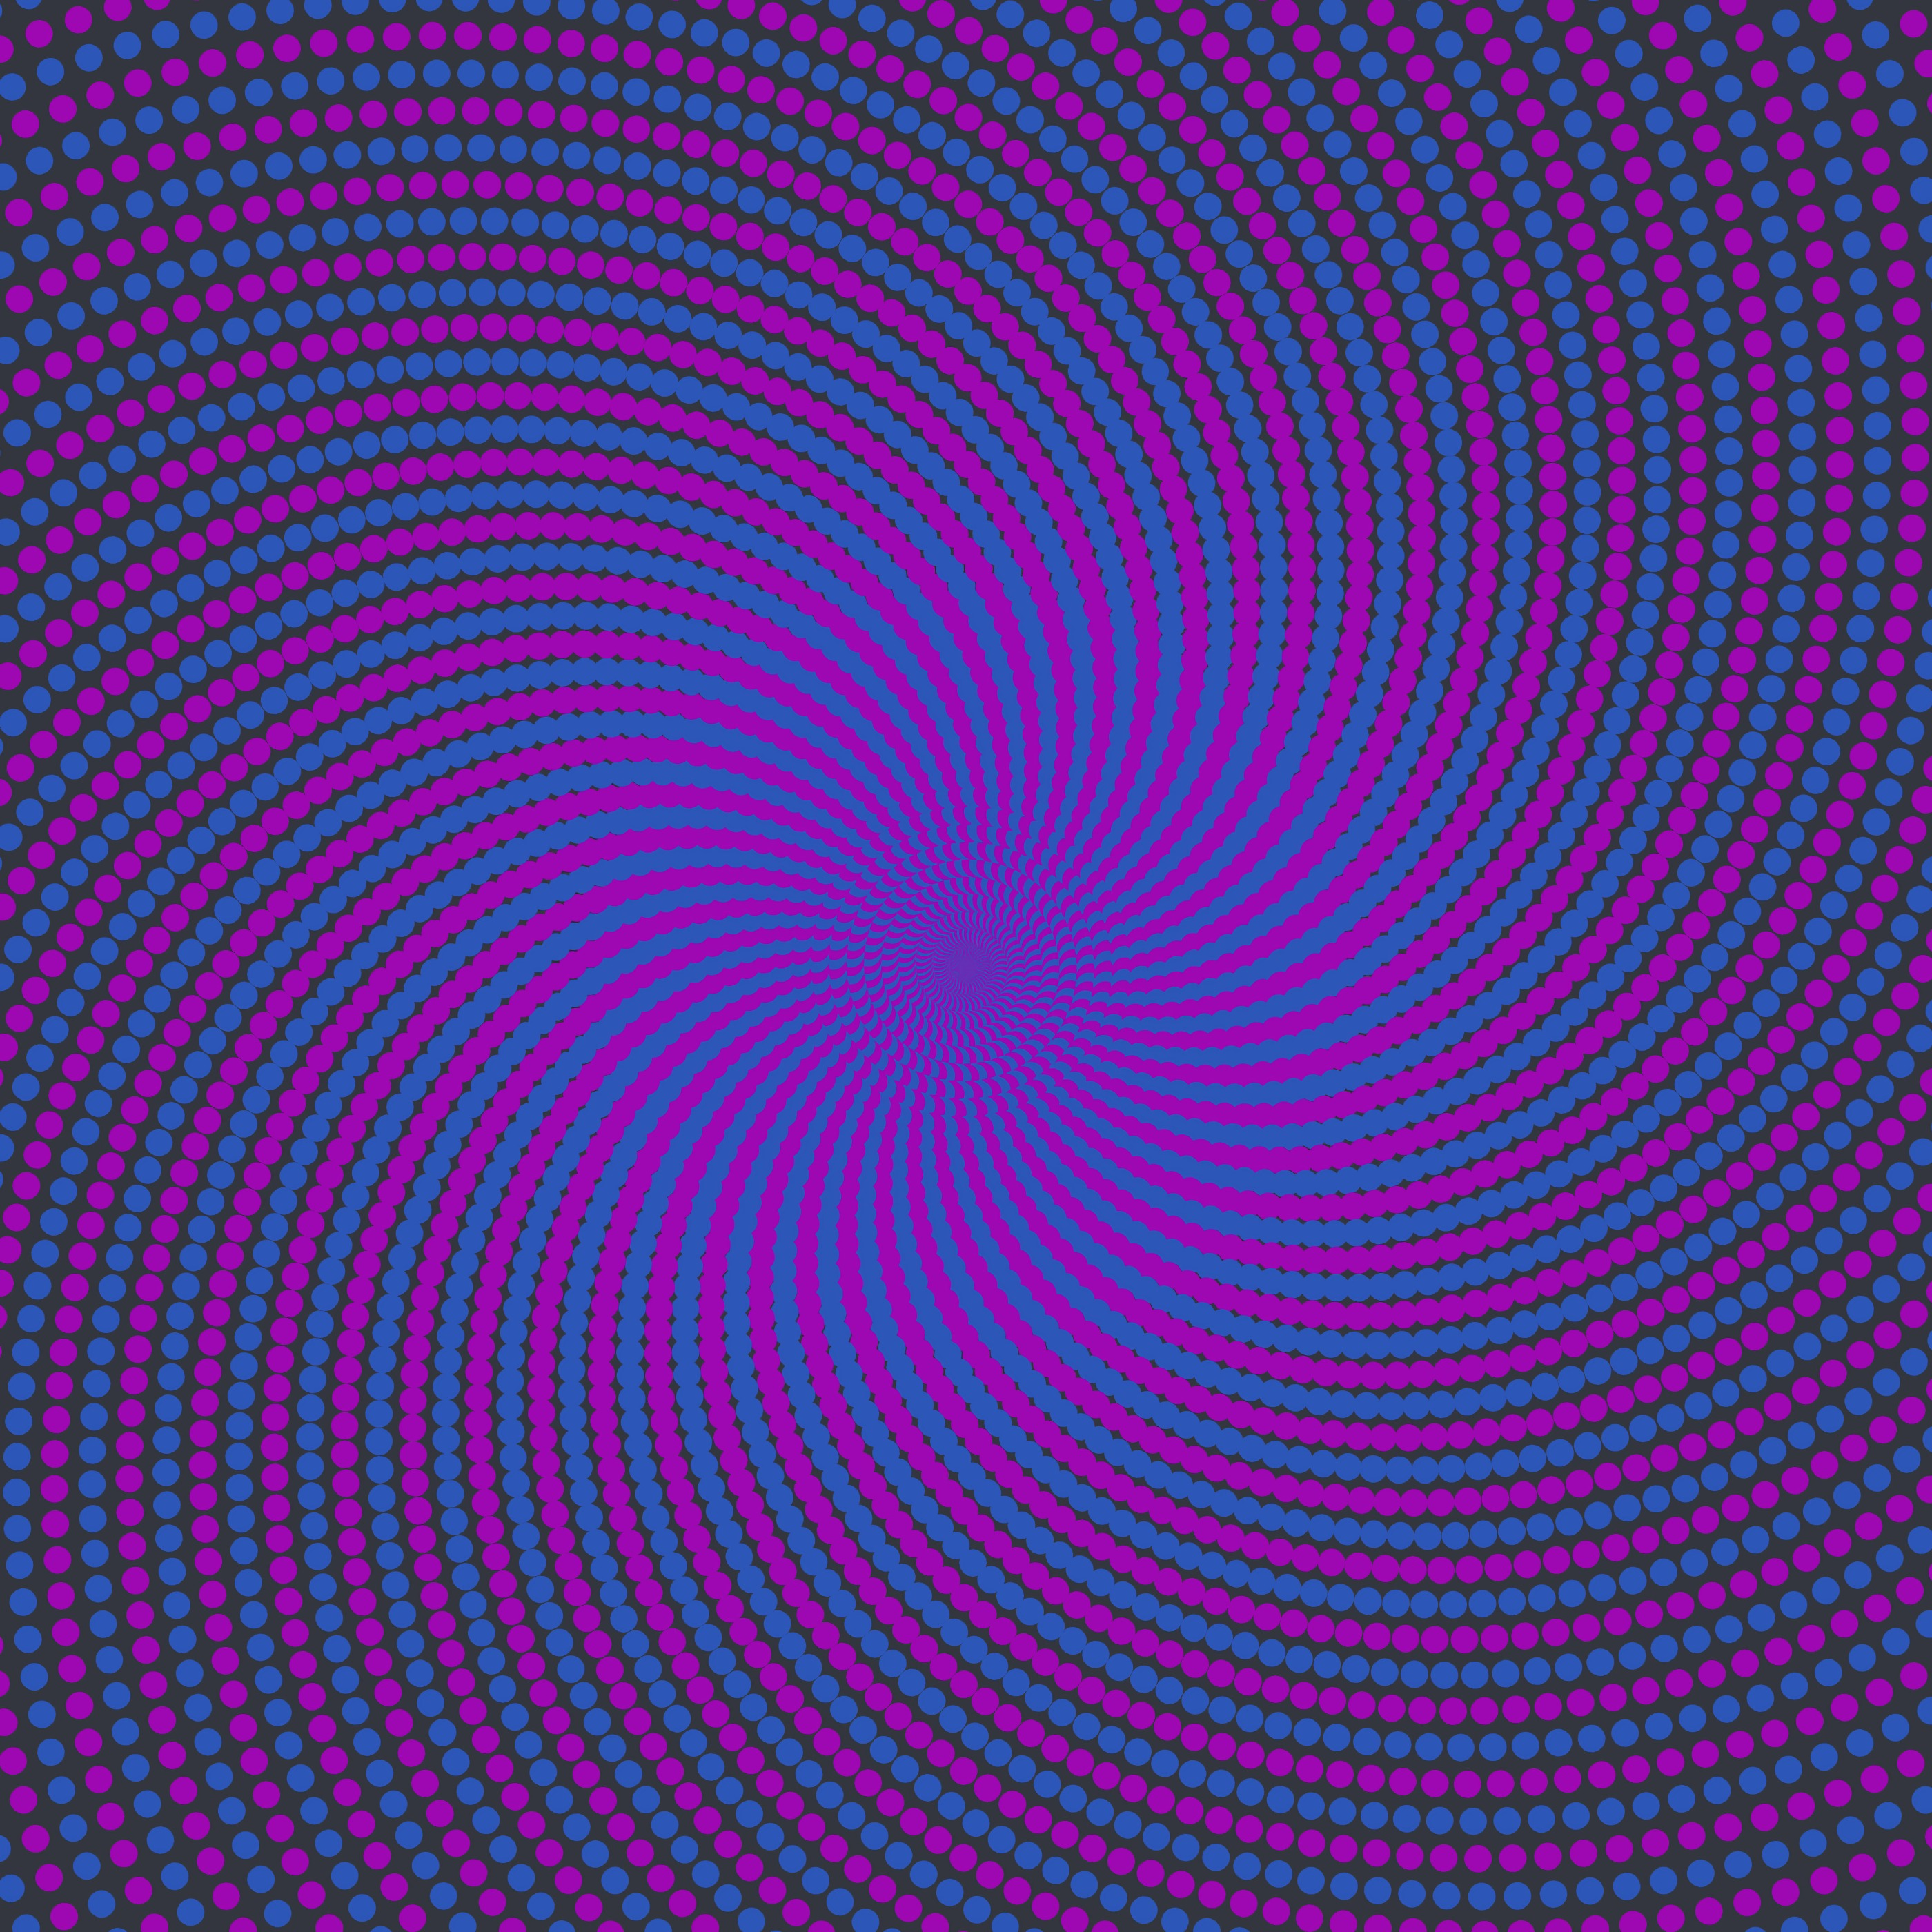 151177 Screensavers and Wallpapers Swirling for phone. Download Texture, Lines, Textures, Points, Point, Funnel, Swirling, Involute, Optical Illusion pictures for free